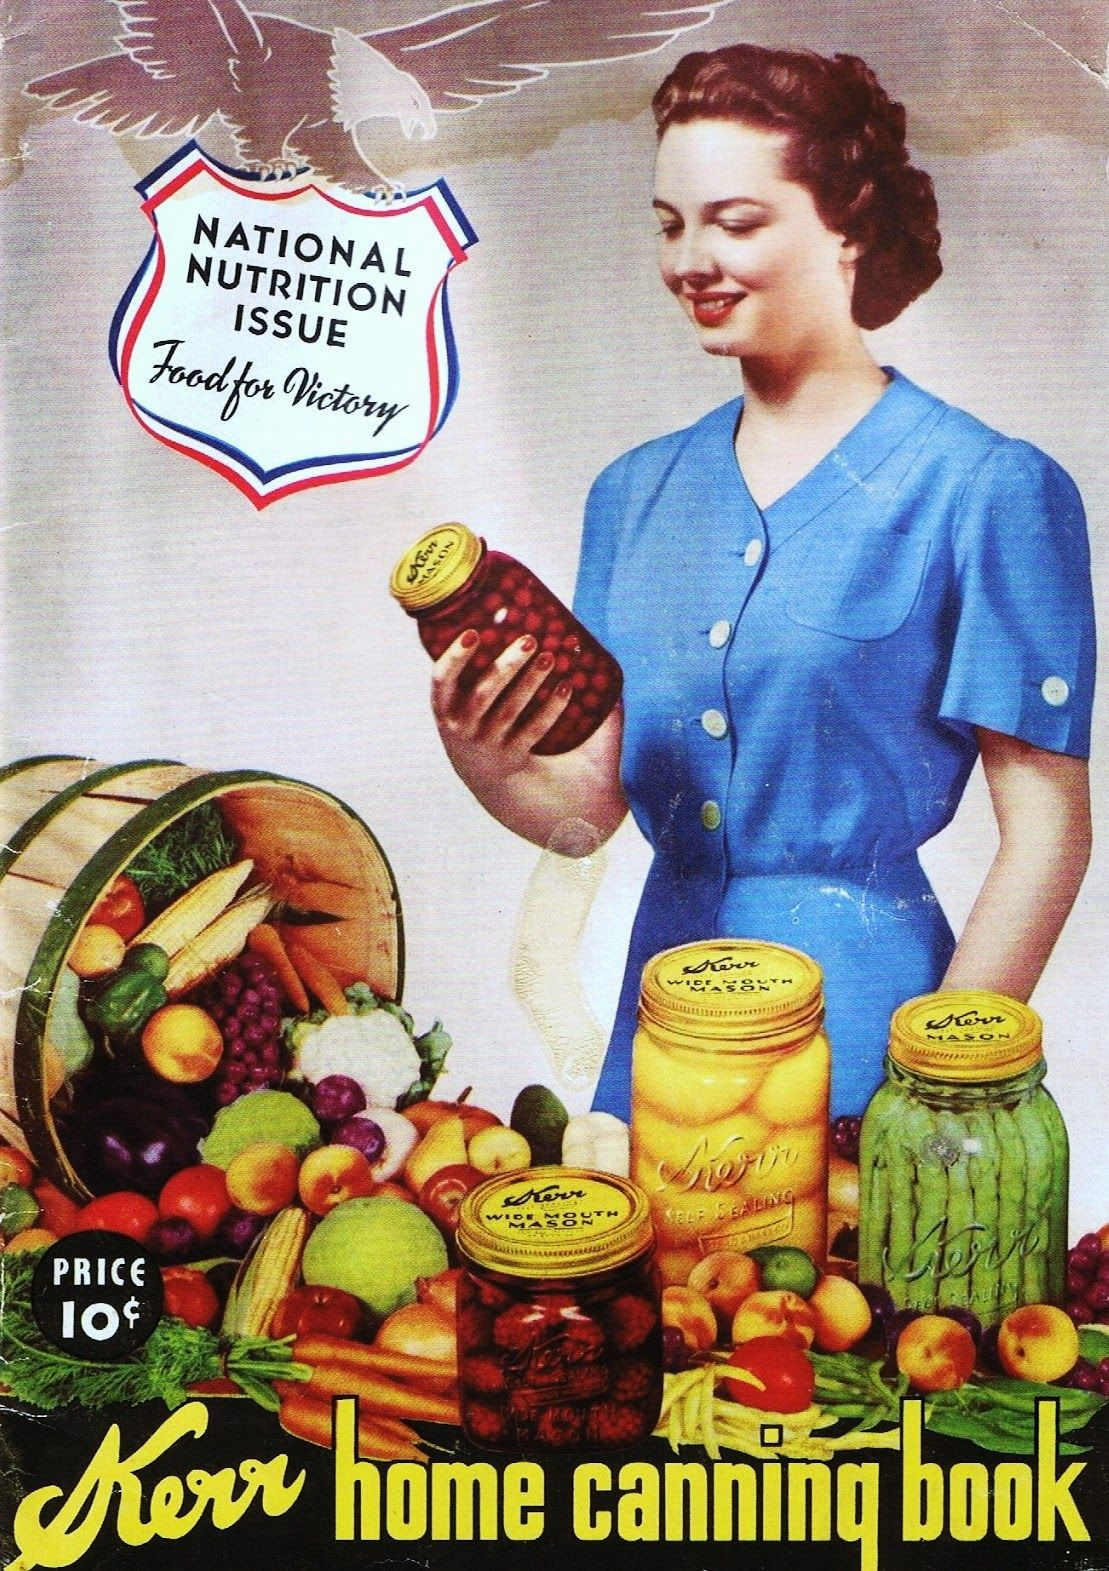 Proverbs 31 Woman: 10 Common Canning Myths - Debunked!